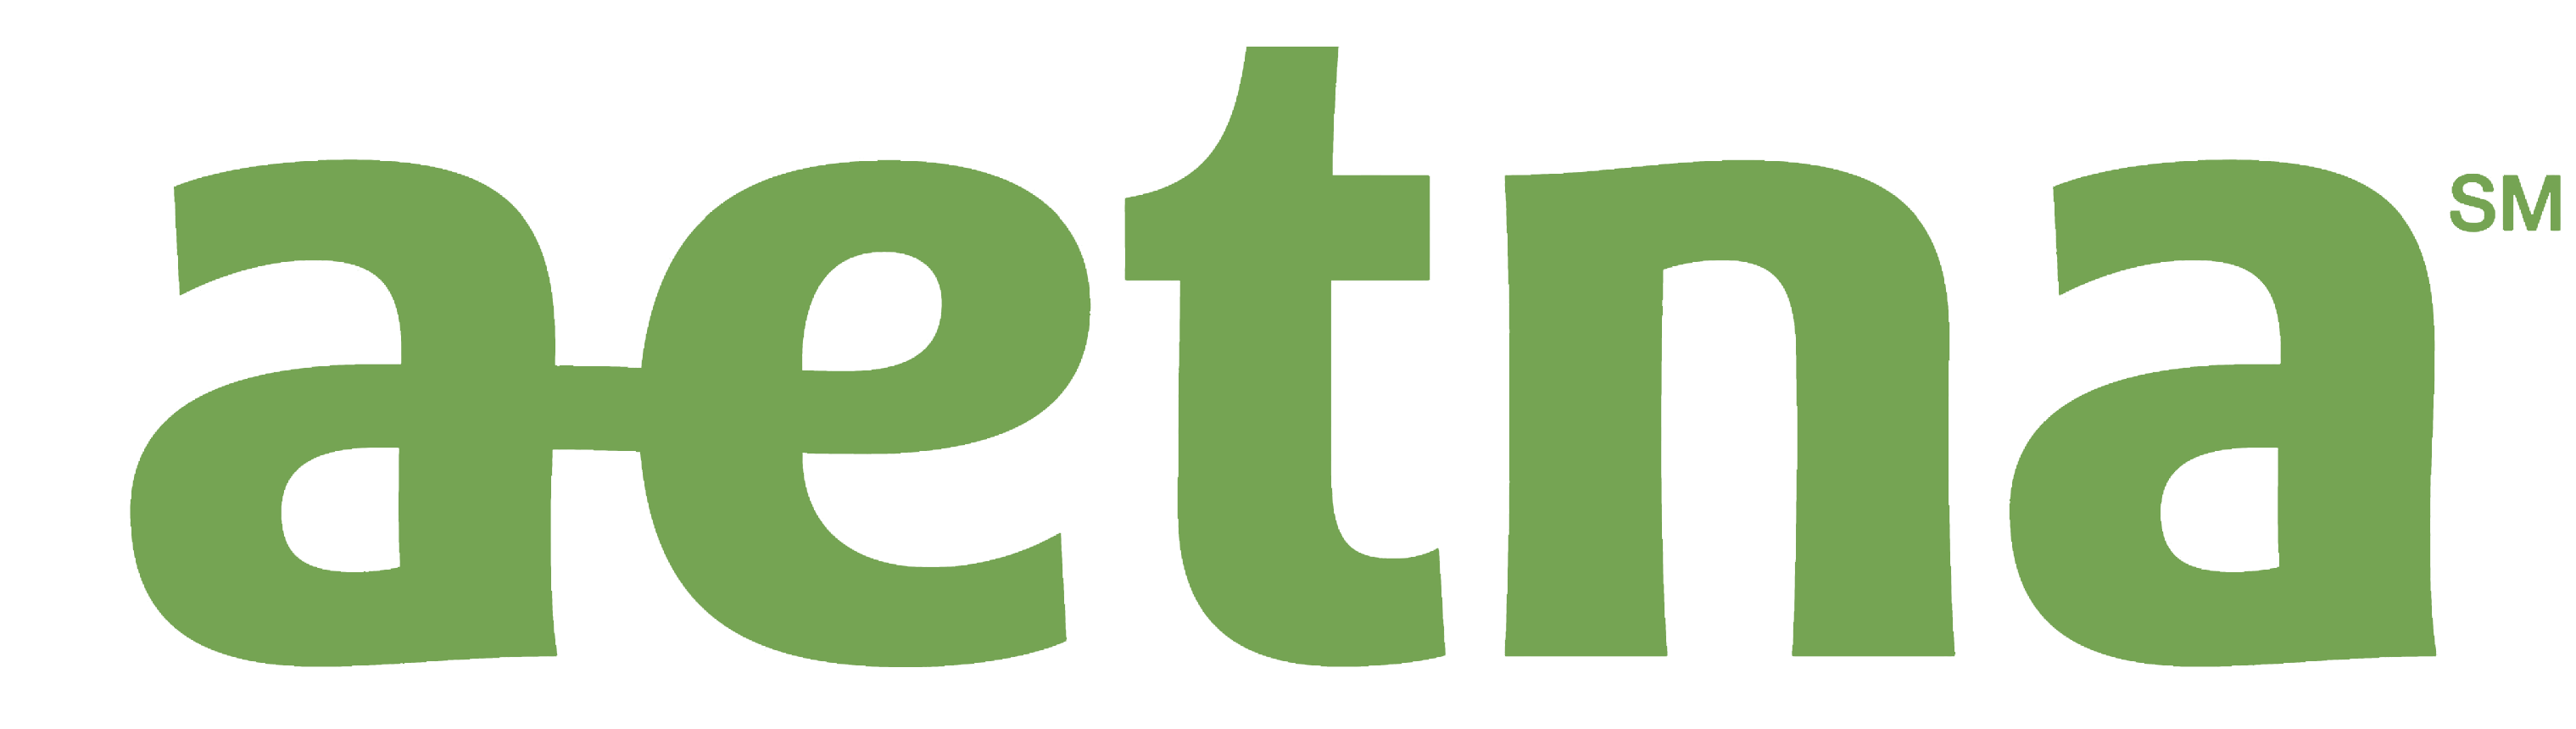 aetna_3.png Image